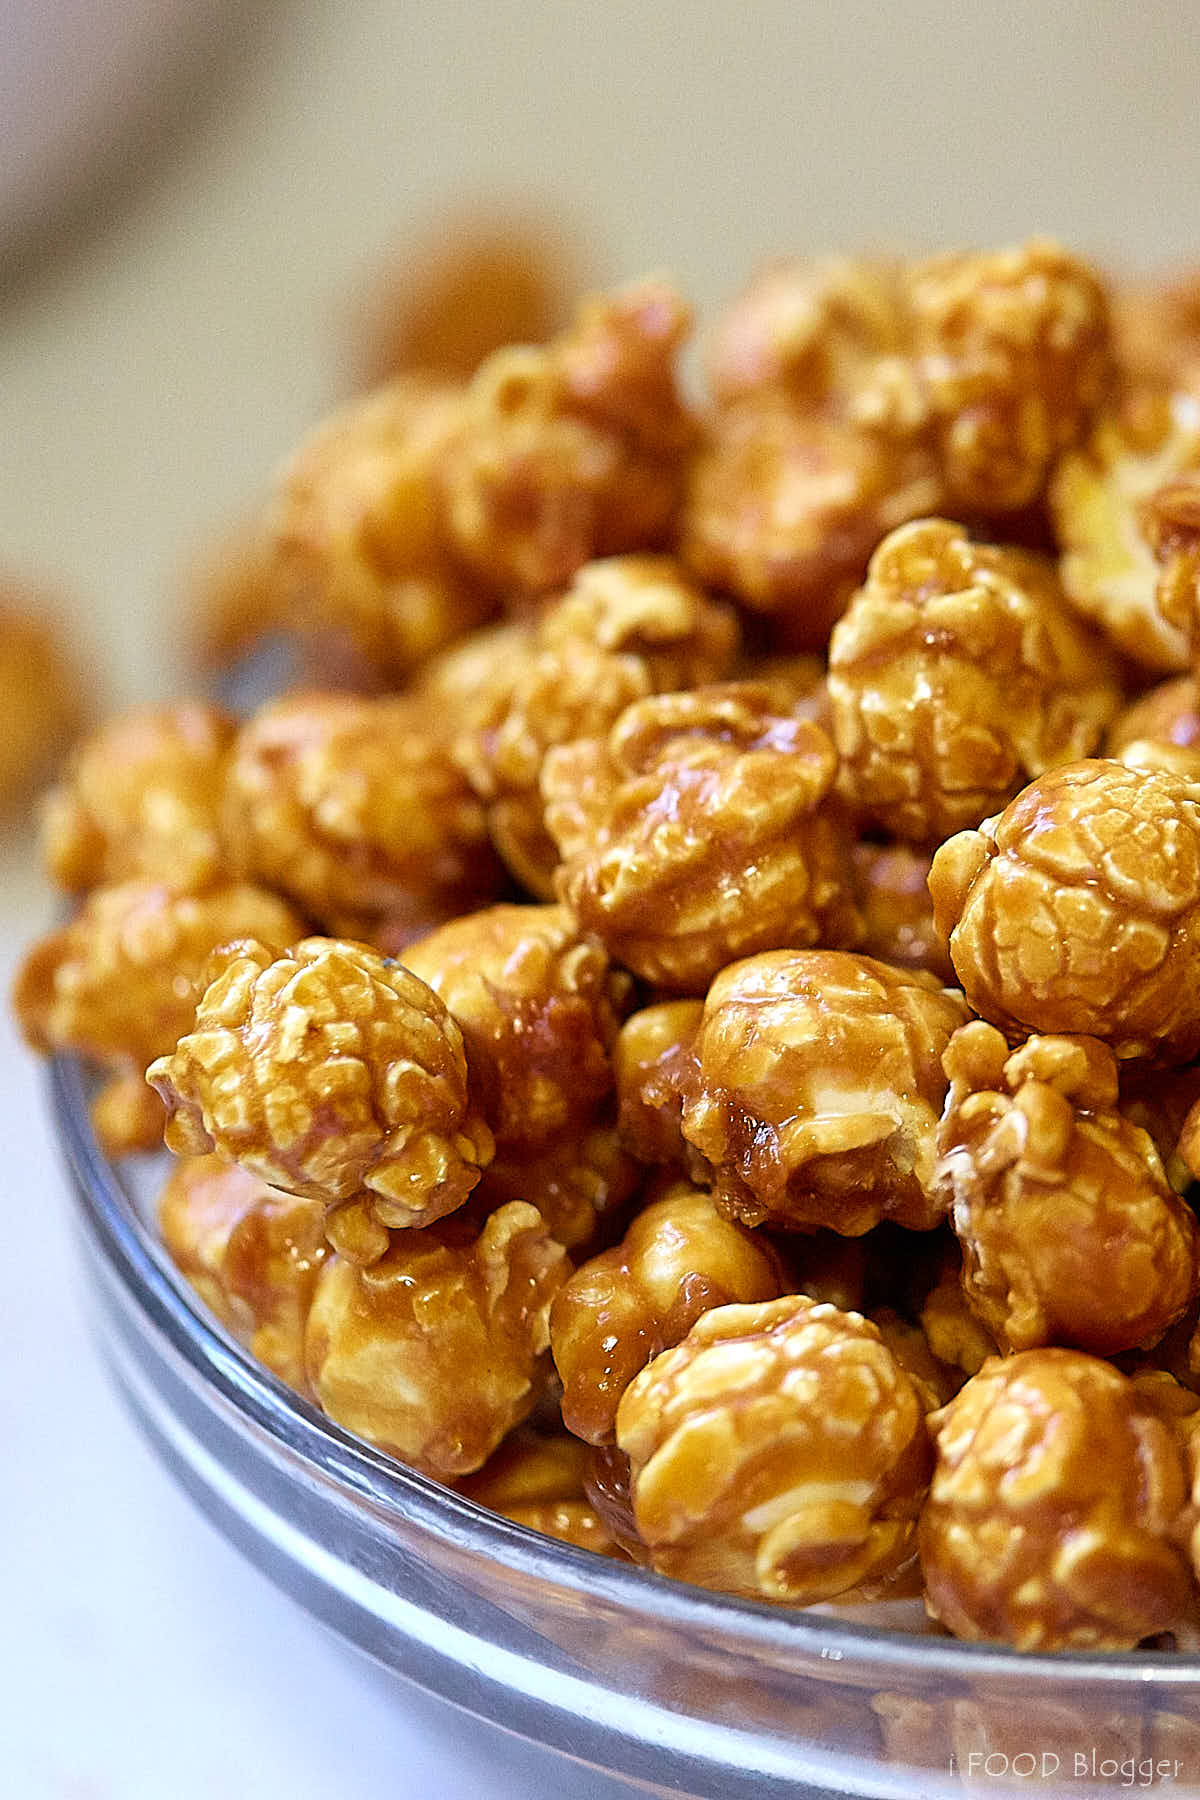 A side view of a glass bowl filled with delicious homemade caramel popcorn.